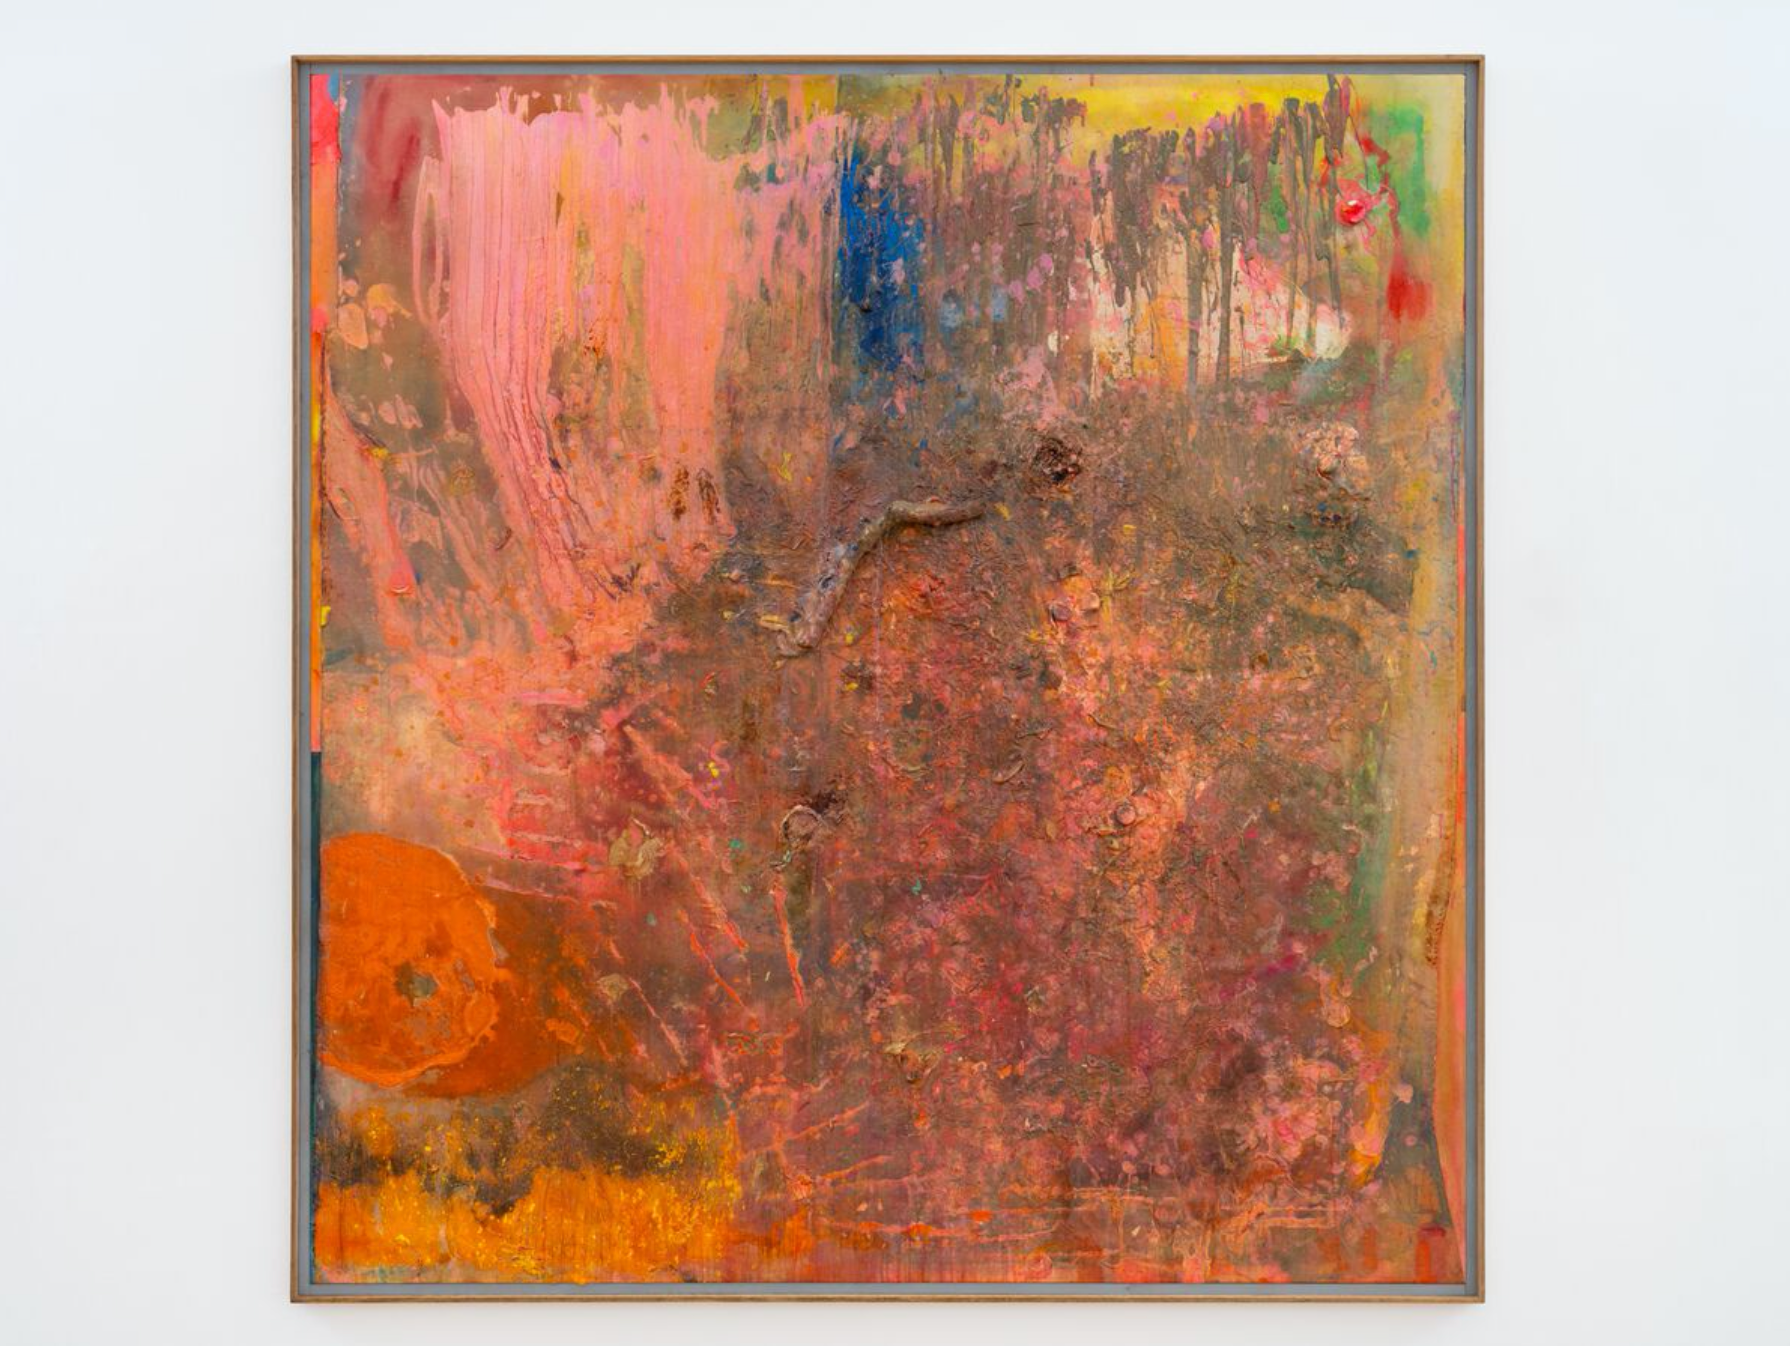 Frank Bowling, Piano to Guyana, 2004. Hauser Wirth